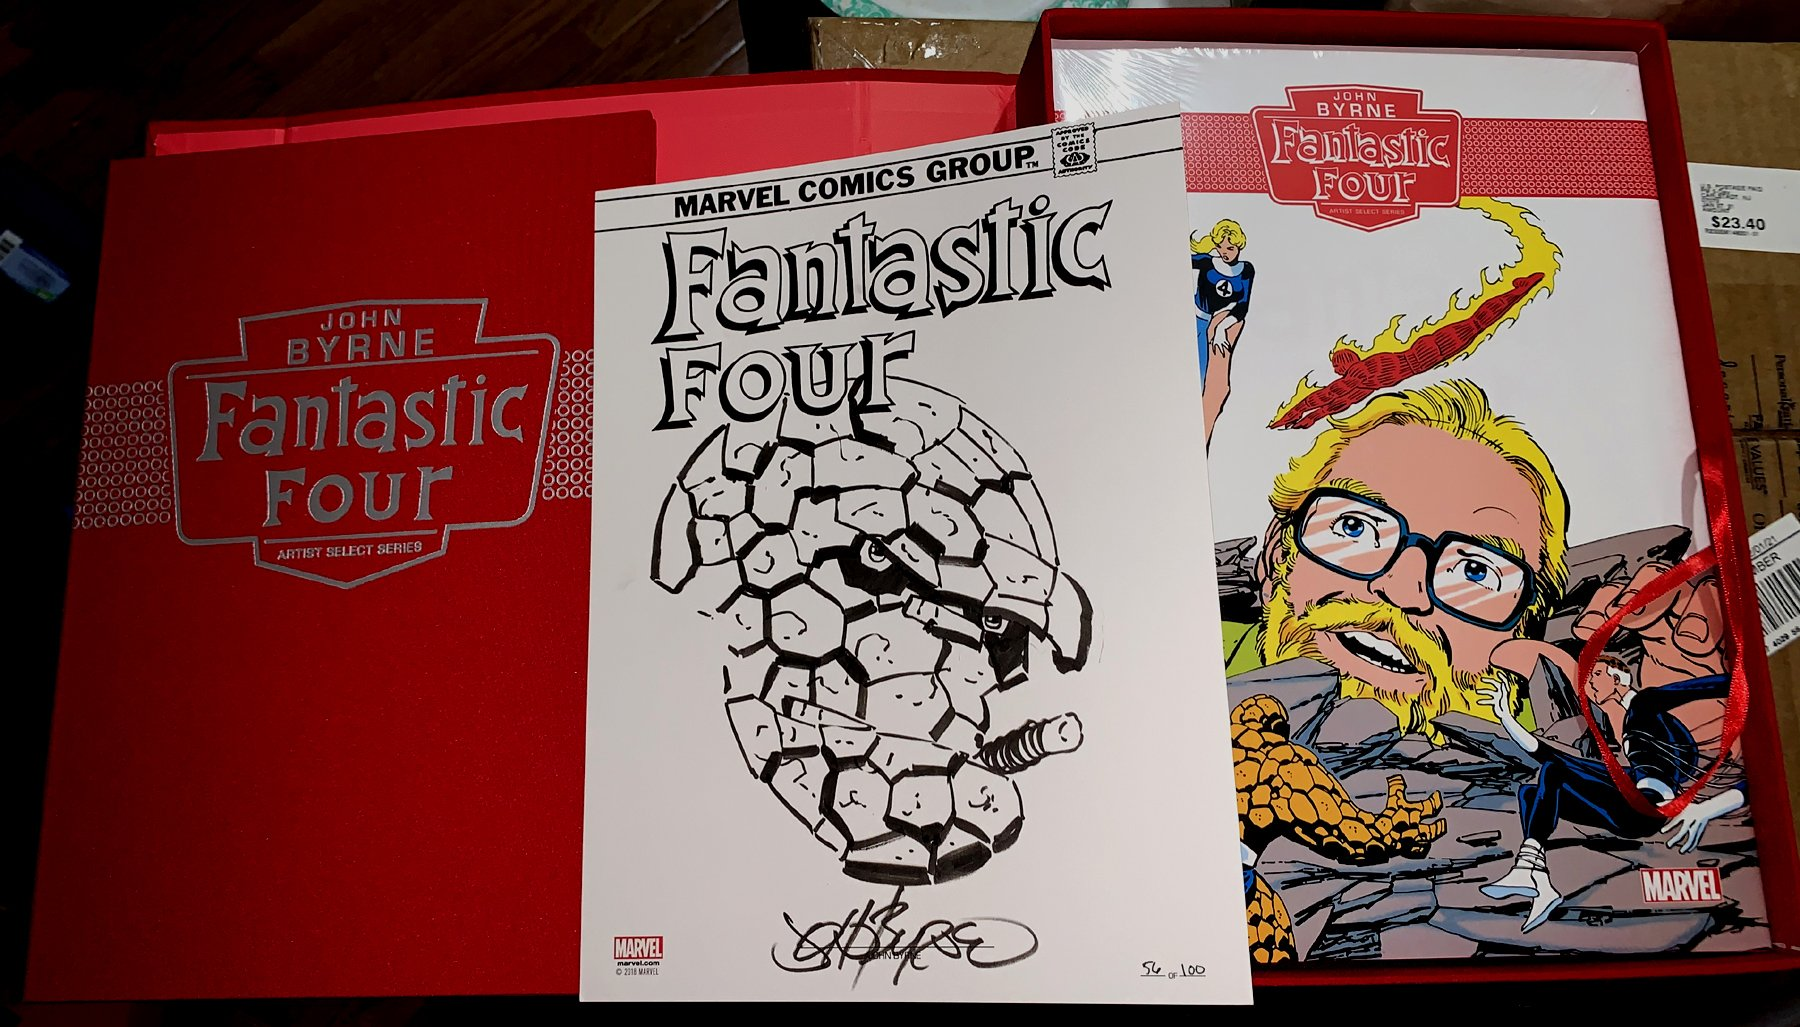 John Byrne Fantastic Four 'Artist Select Series' Omnibus & THING Drawing #56 of 100 Included!